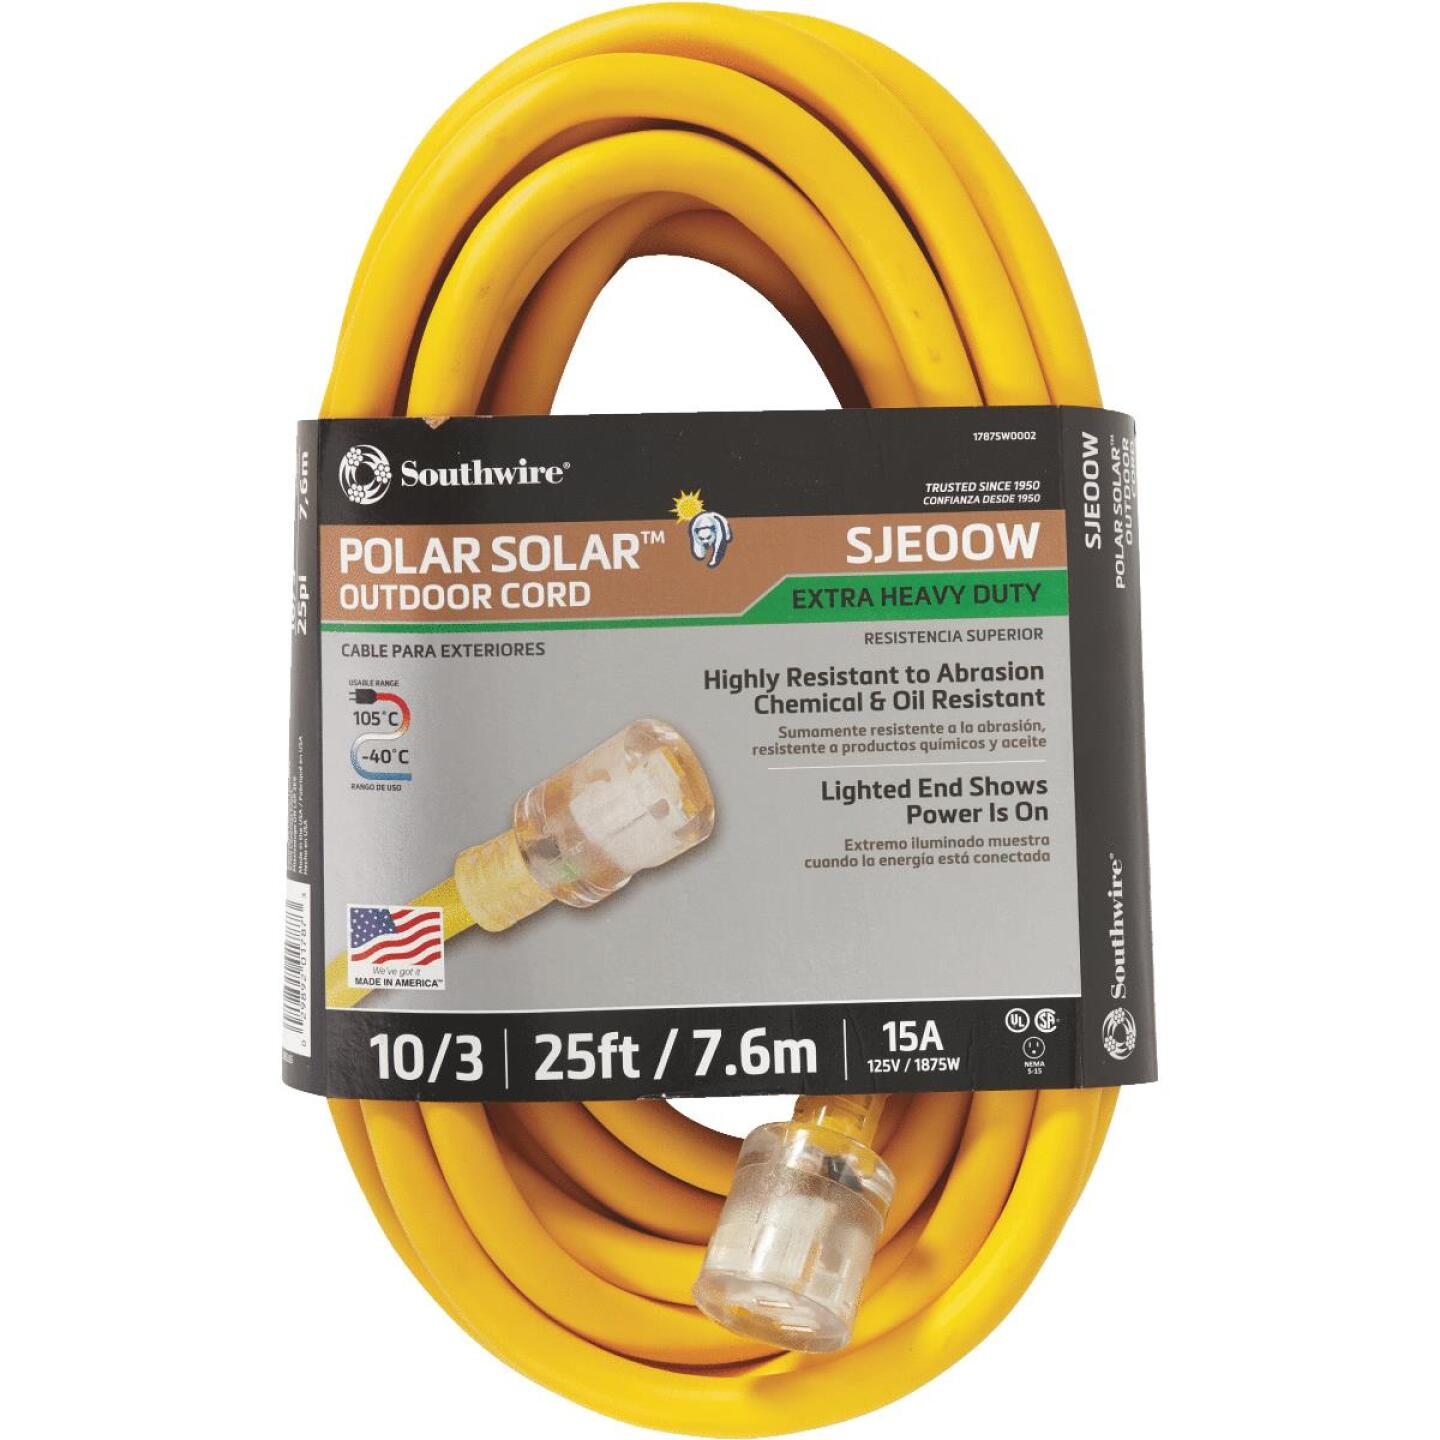 Coleman Cable 25 Ft. 10/3 Cold Weather Extension Cord Image 2